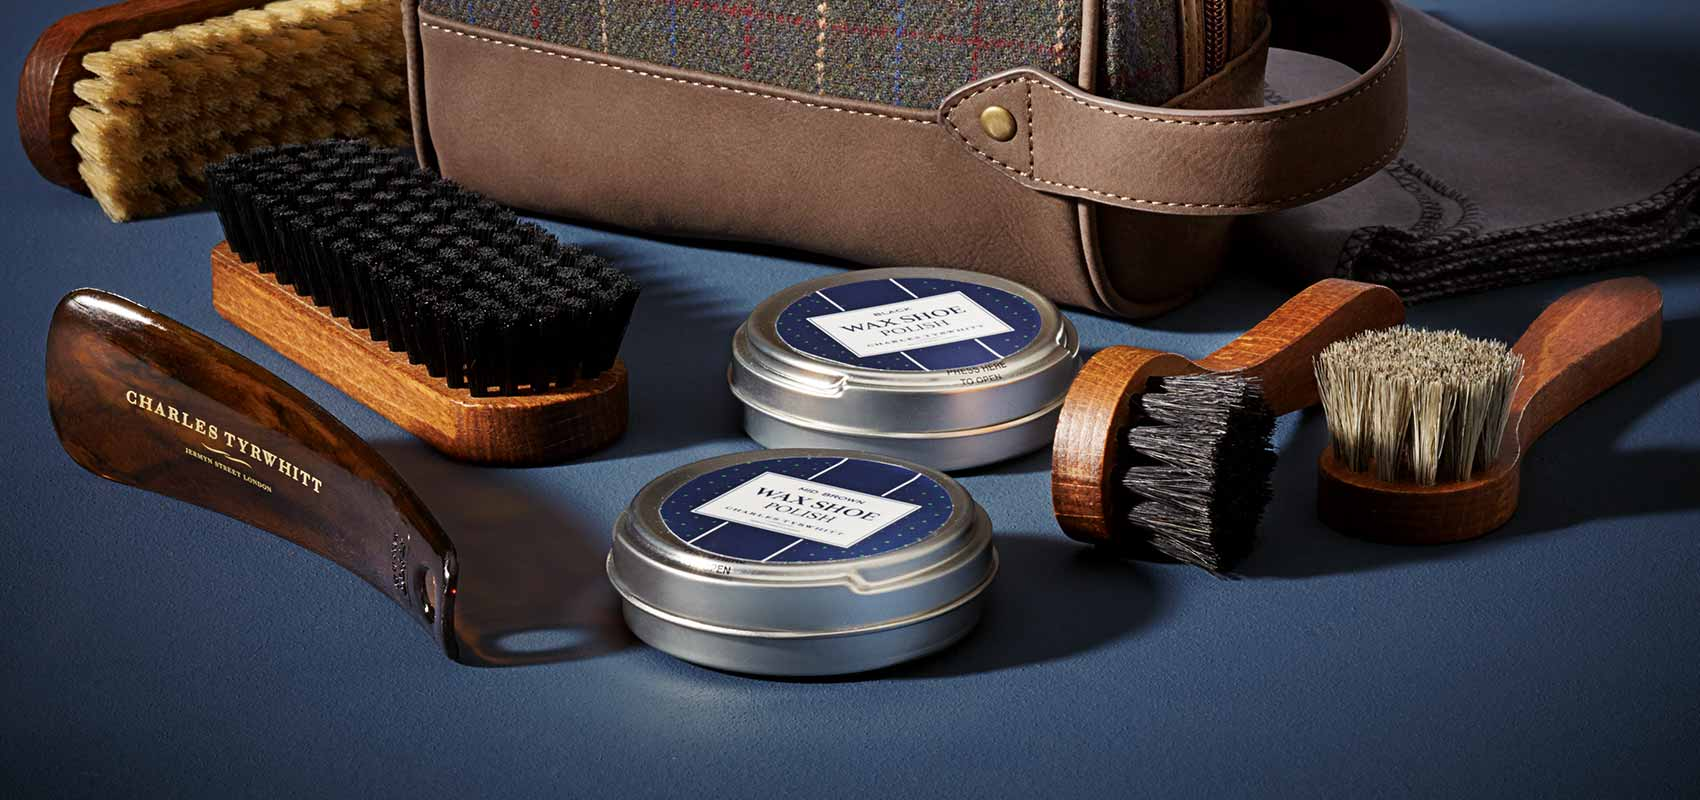 Charles Tyrwhitt shoe care